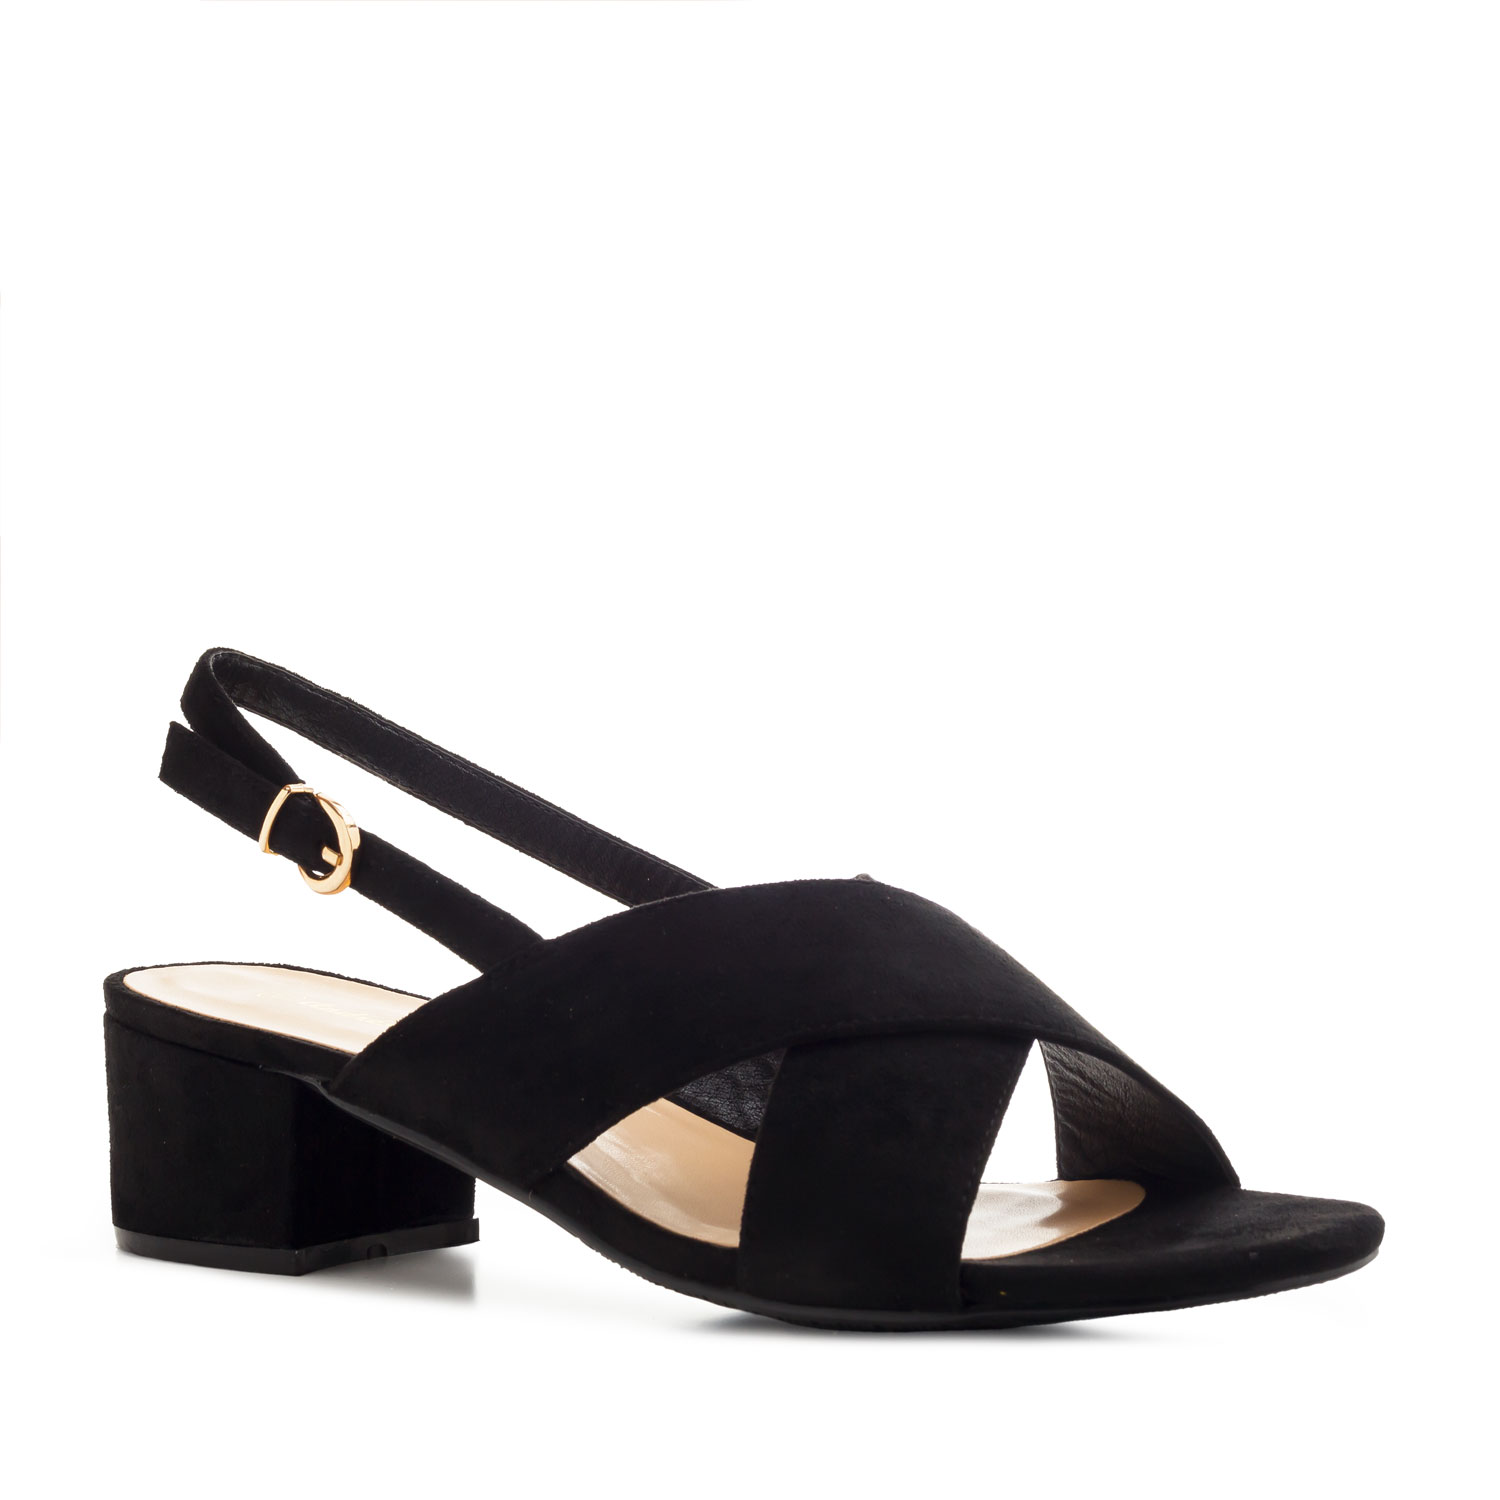 Slingback Cross-band Sandals in Black Suede